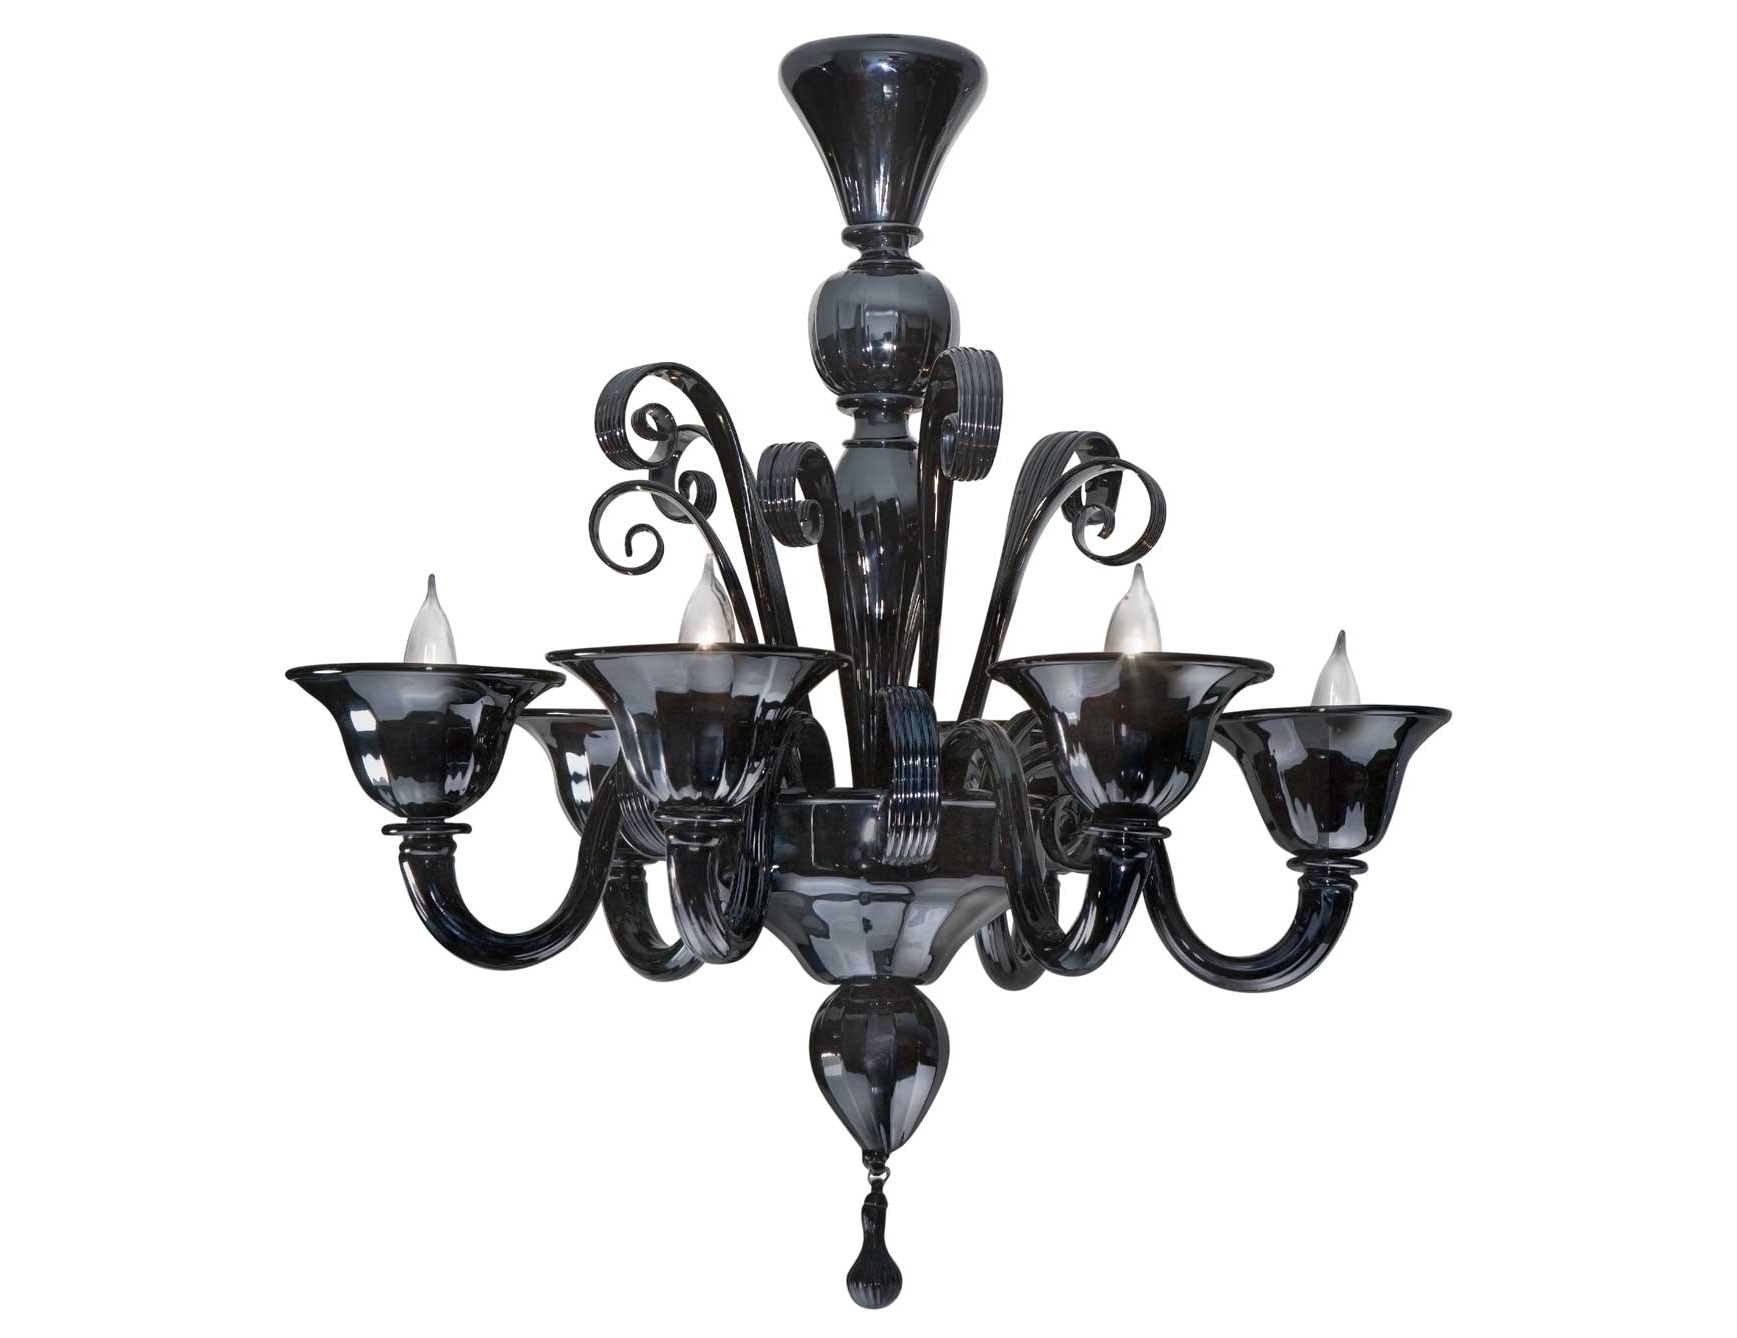 Black Glass Chandelier Throughout Trendy Chandelier: Astounding Black Glass Chandelier Small Black Glass (View 7 of 20)